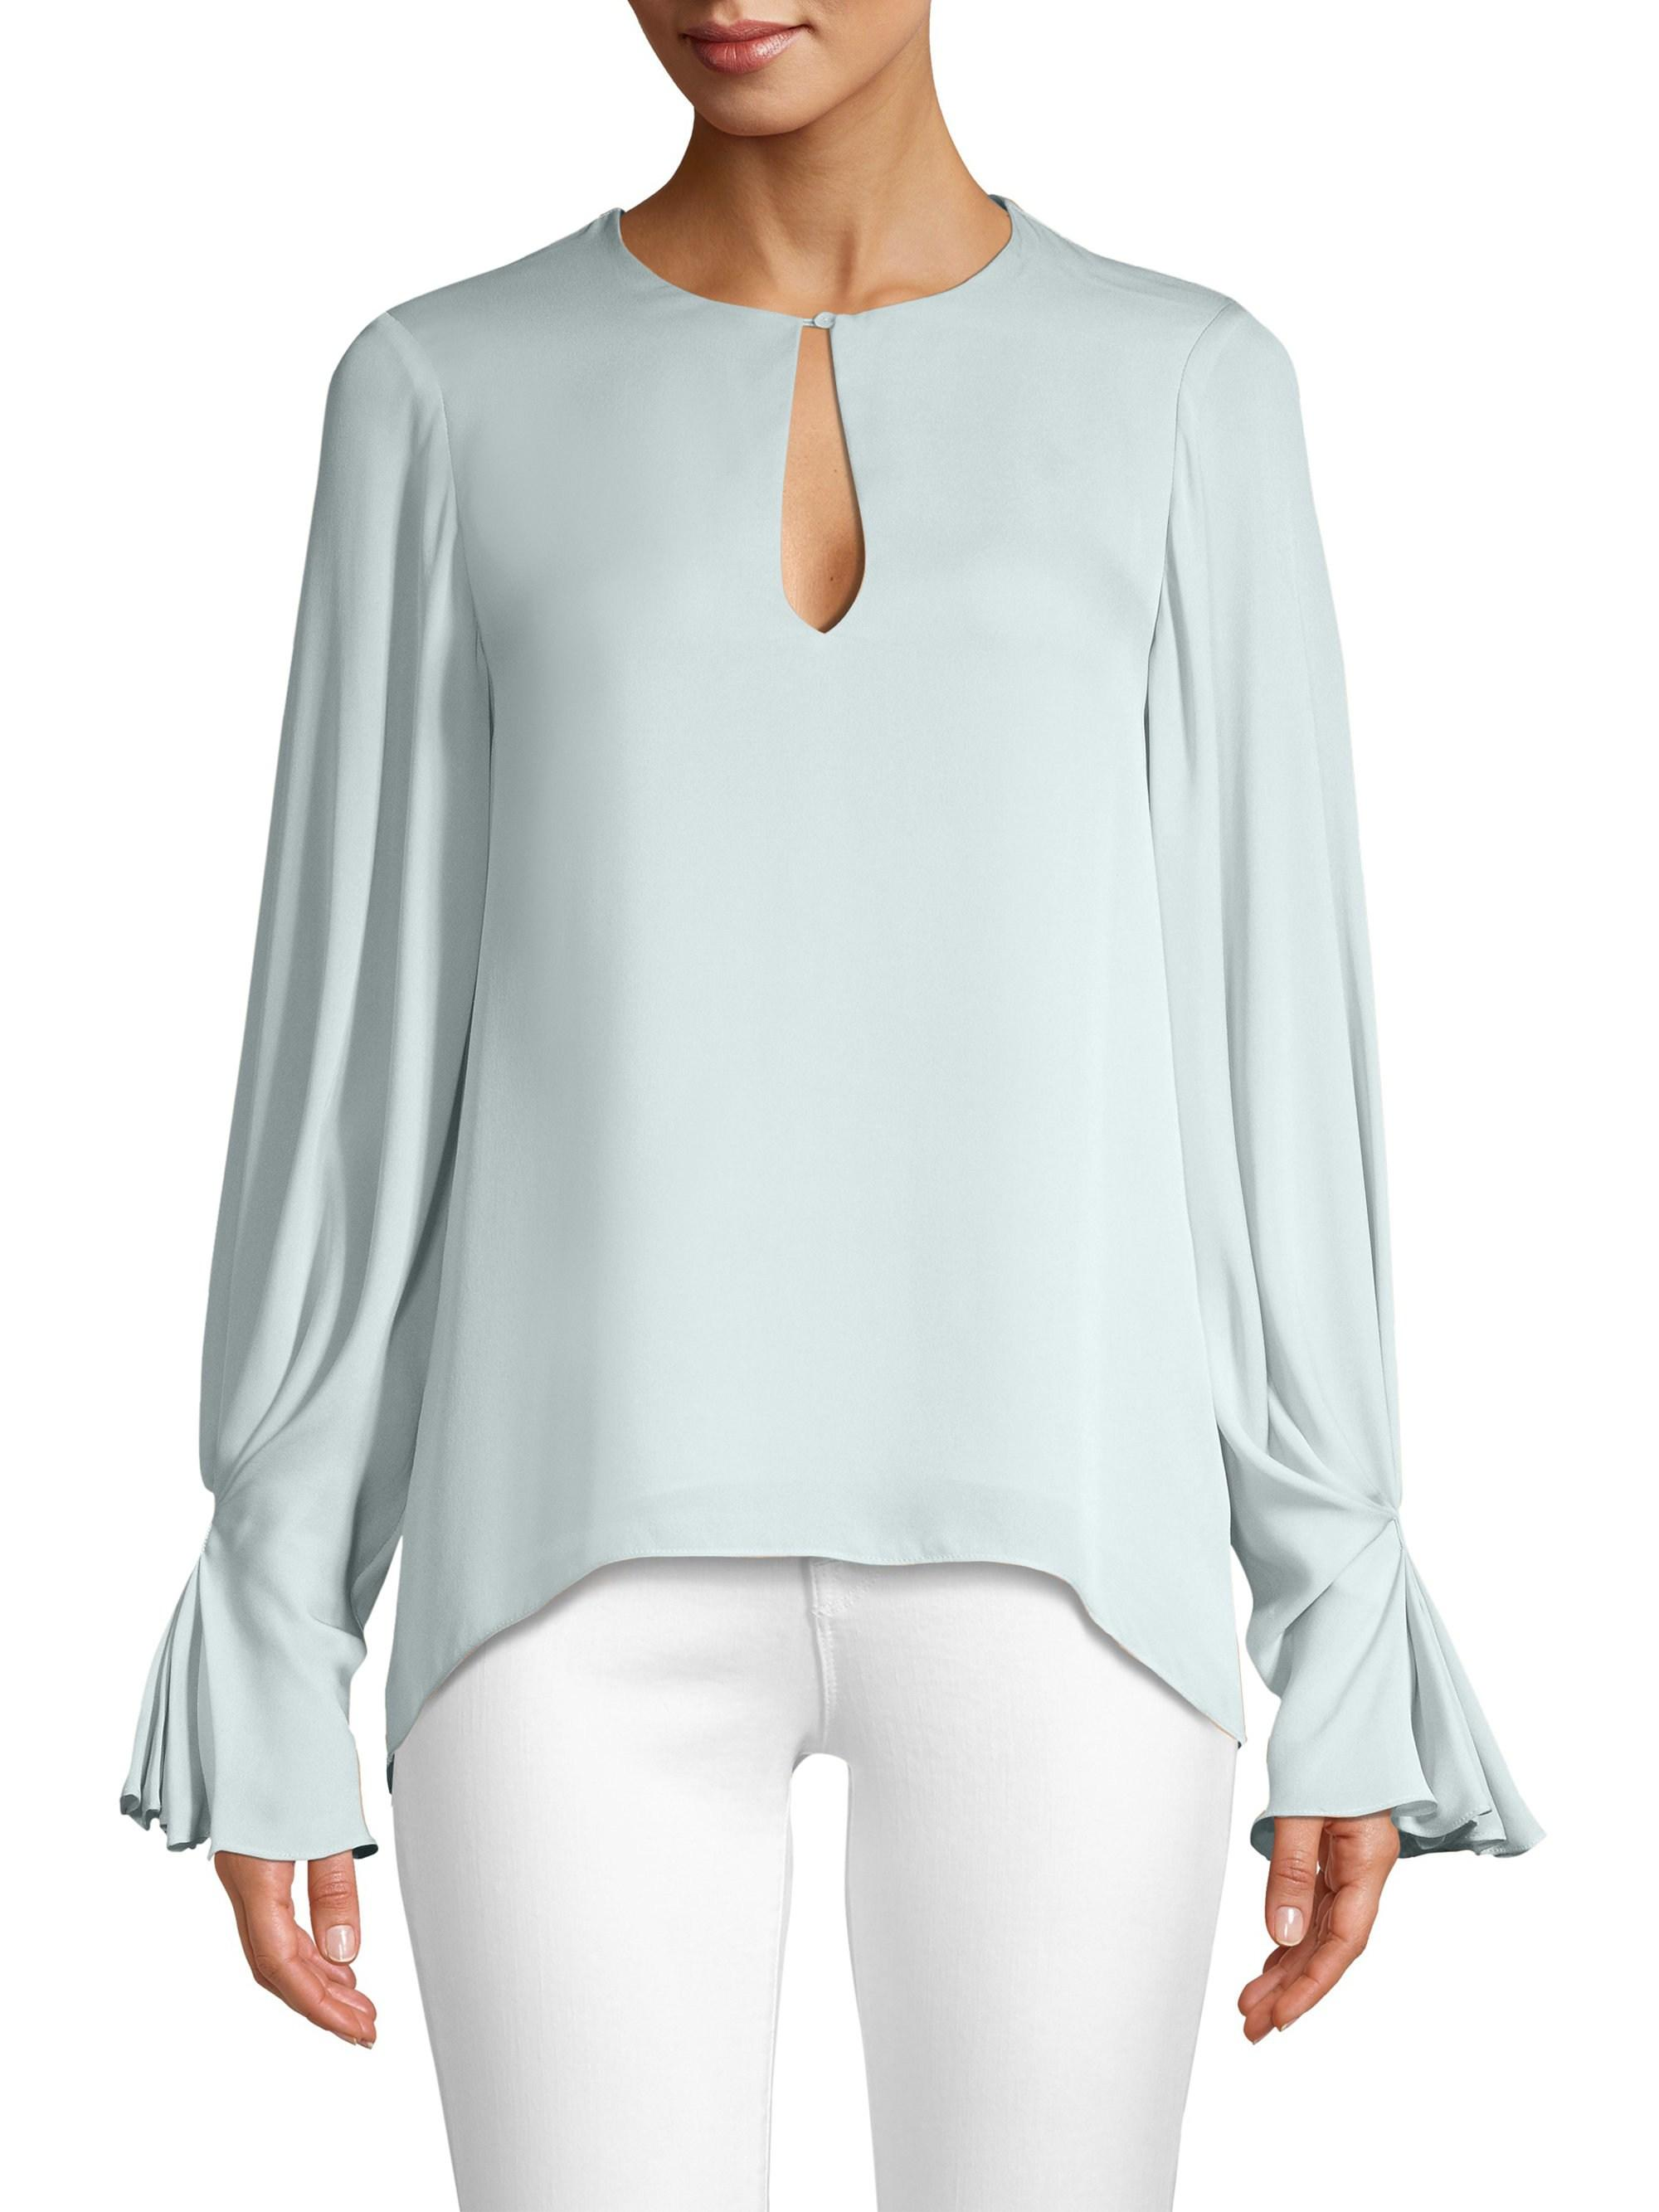 402c3a11bdb6ab Lyst - Joie Abekwa Silk Blouse in Blue